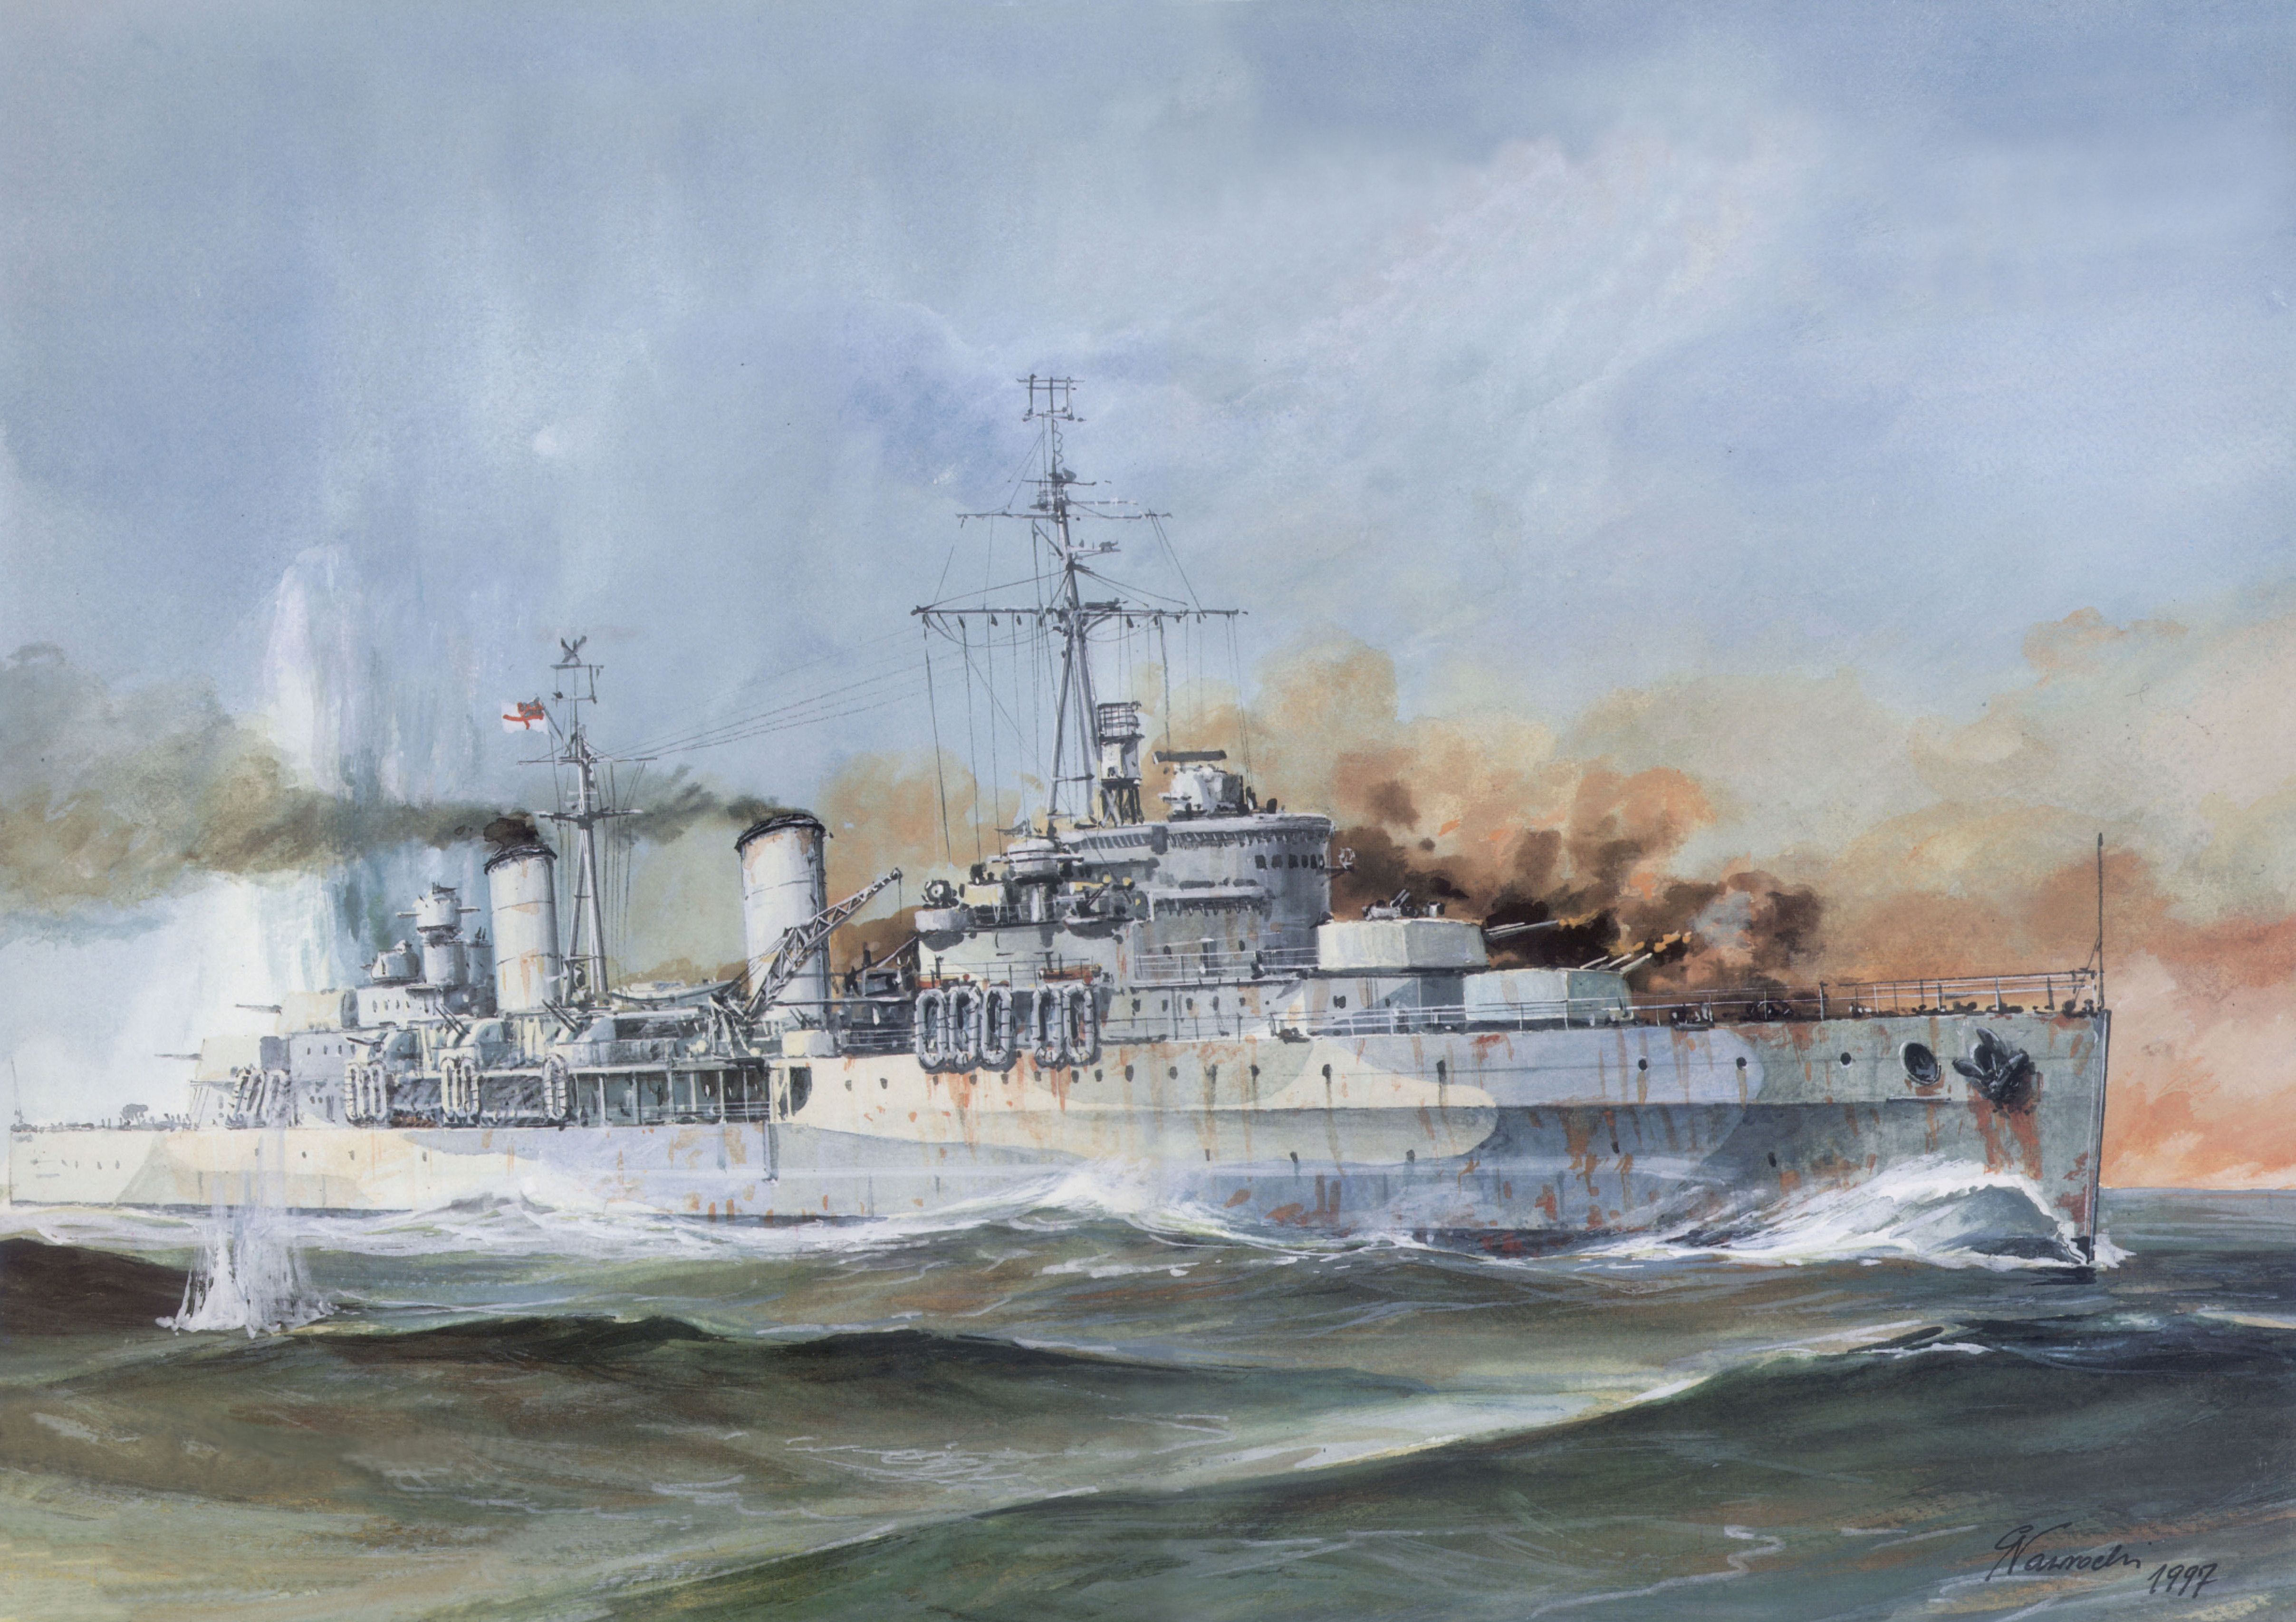 Images HMS Belfast Ships Painting Art military 4831x3412 4831x3412